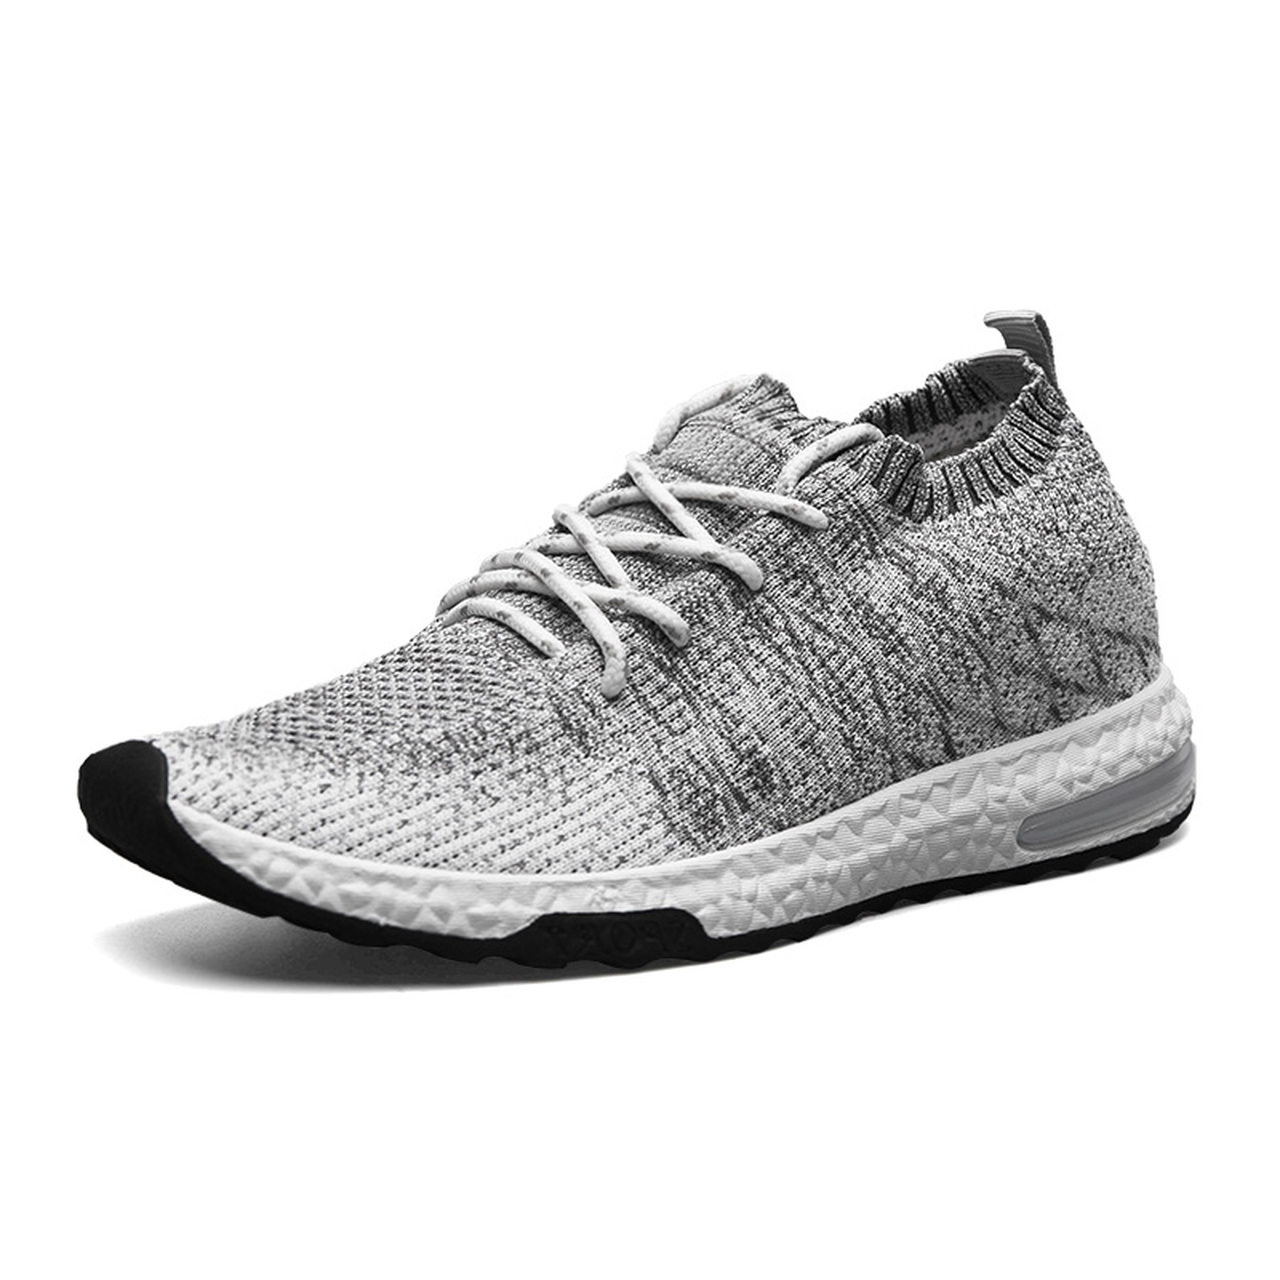 6930e27c9f75 ... Running Shoes Men Trainers Breathable Men Gym Shoes 2016 Summer Boys Athletic  Shoes Gray/Orange ...